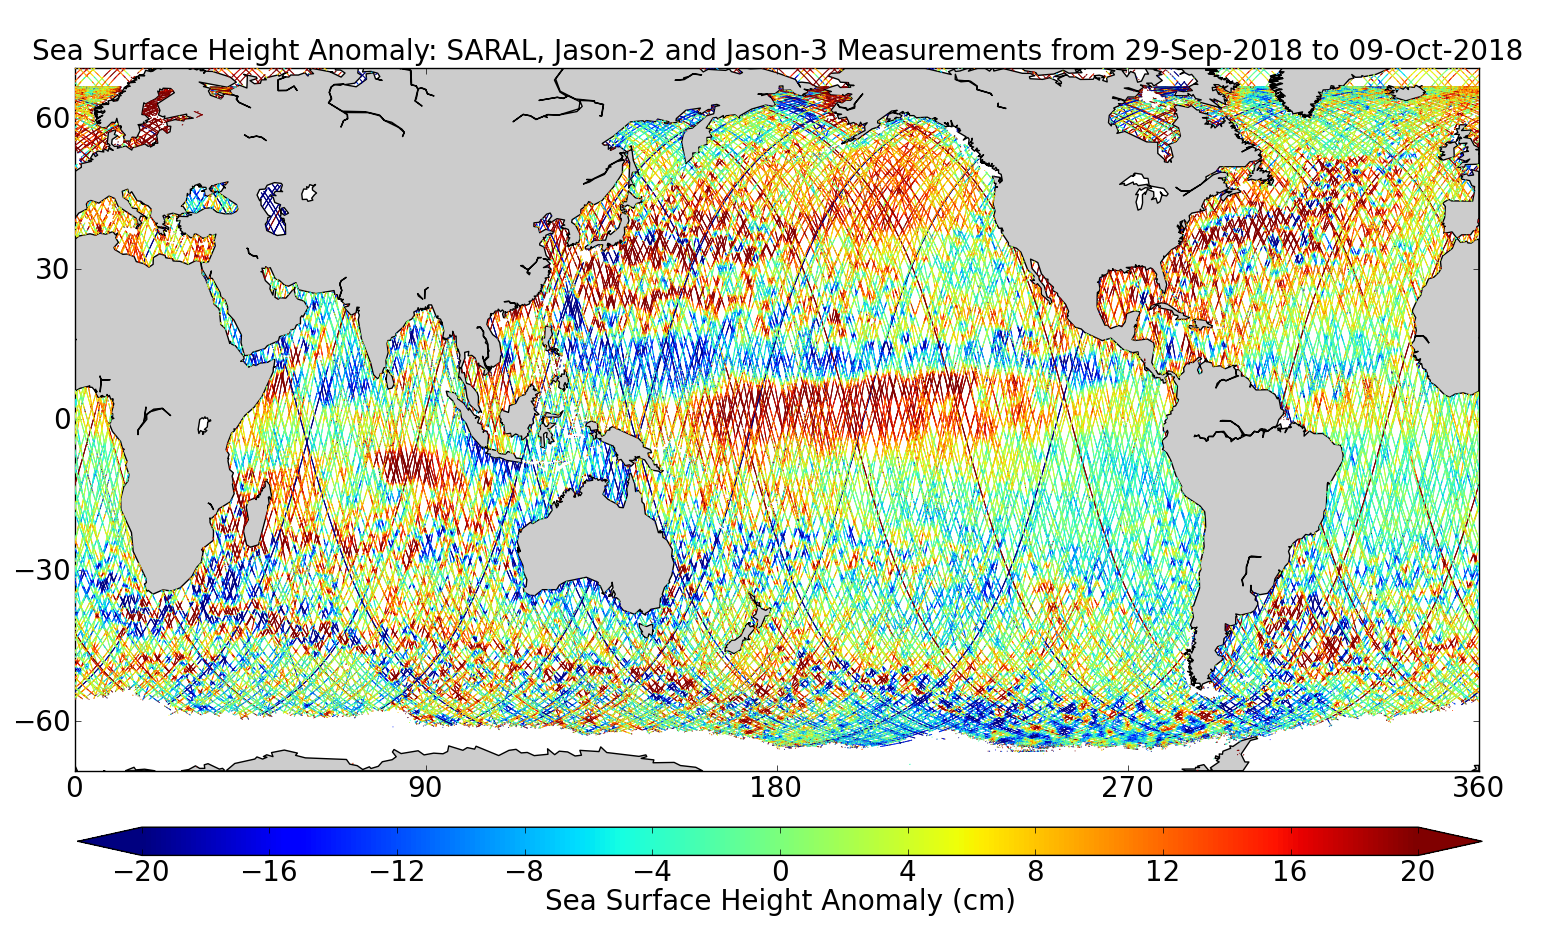 Sea Surface Height Anomaly: SARAL, Jason-2 and Jason-3 Measurements from 29-Sep-2018 to 09-Oct-2018